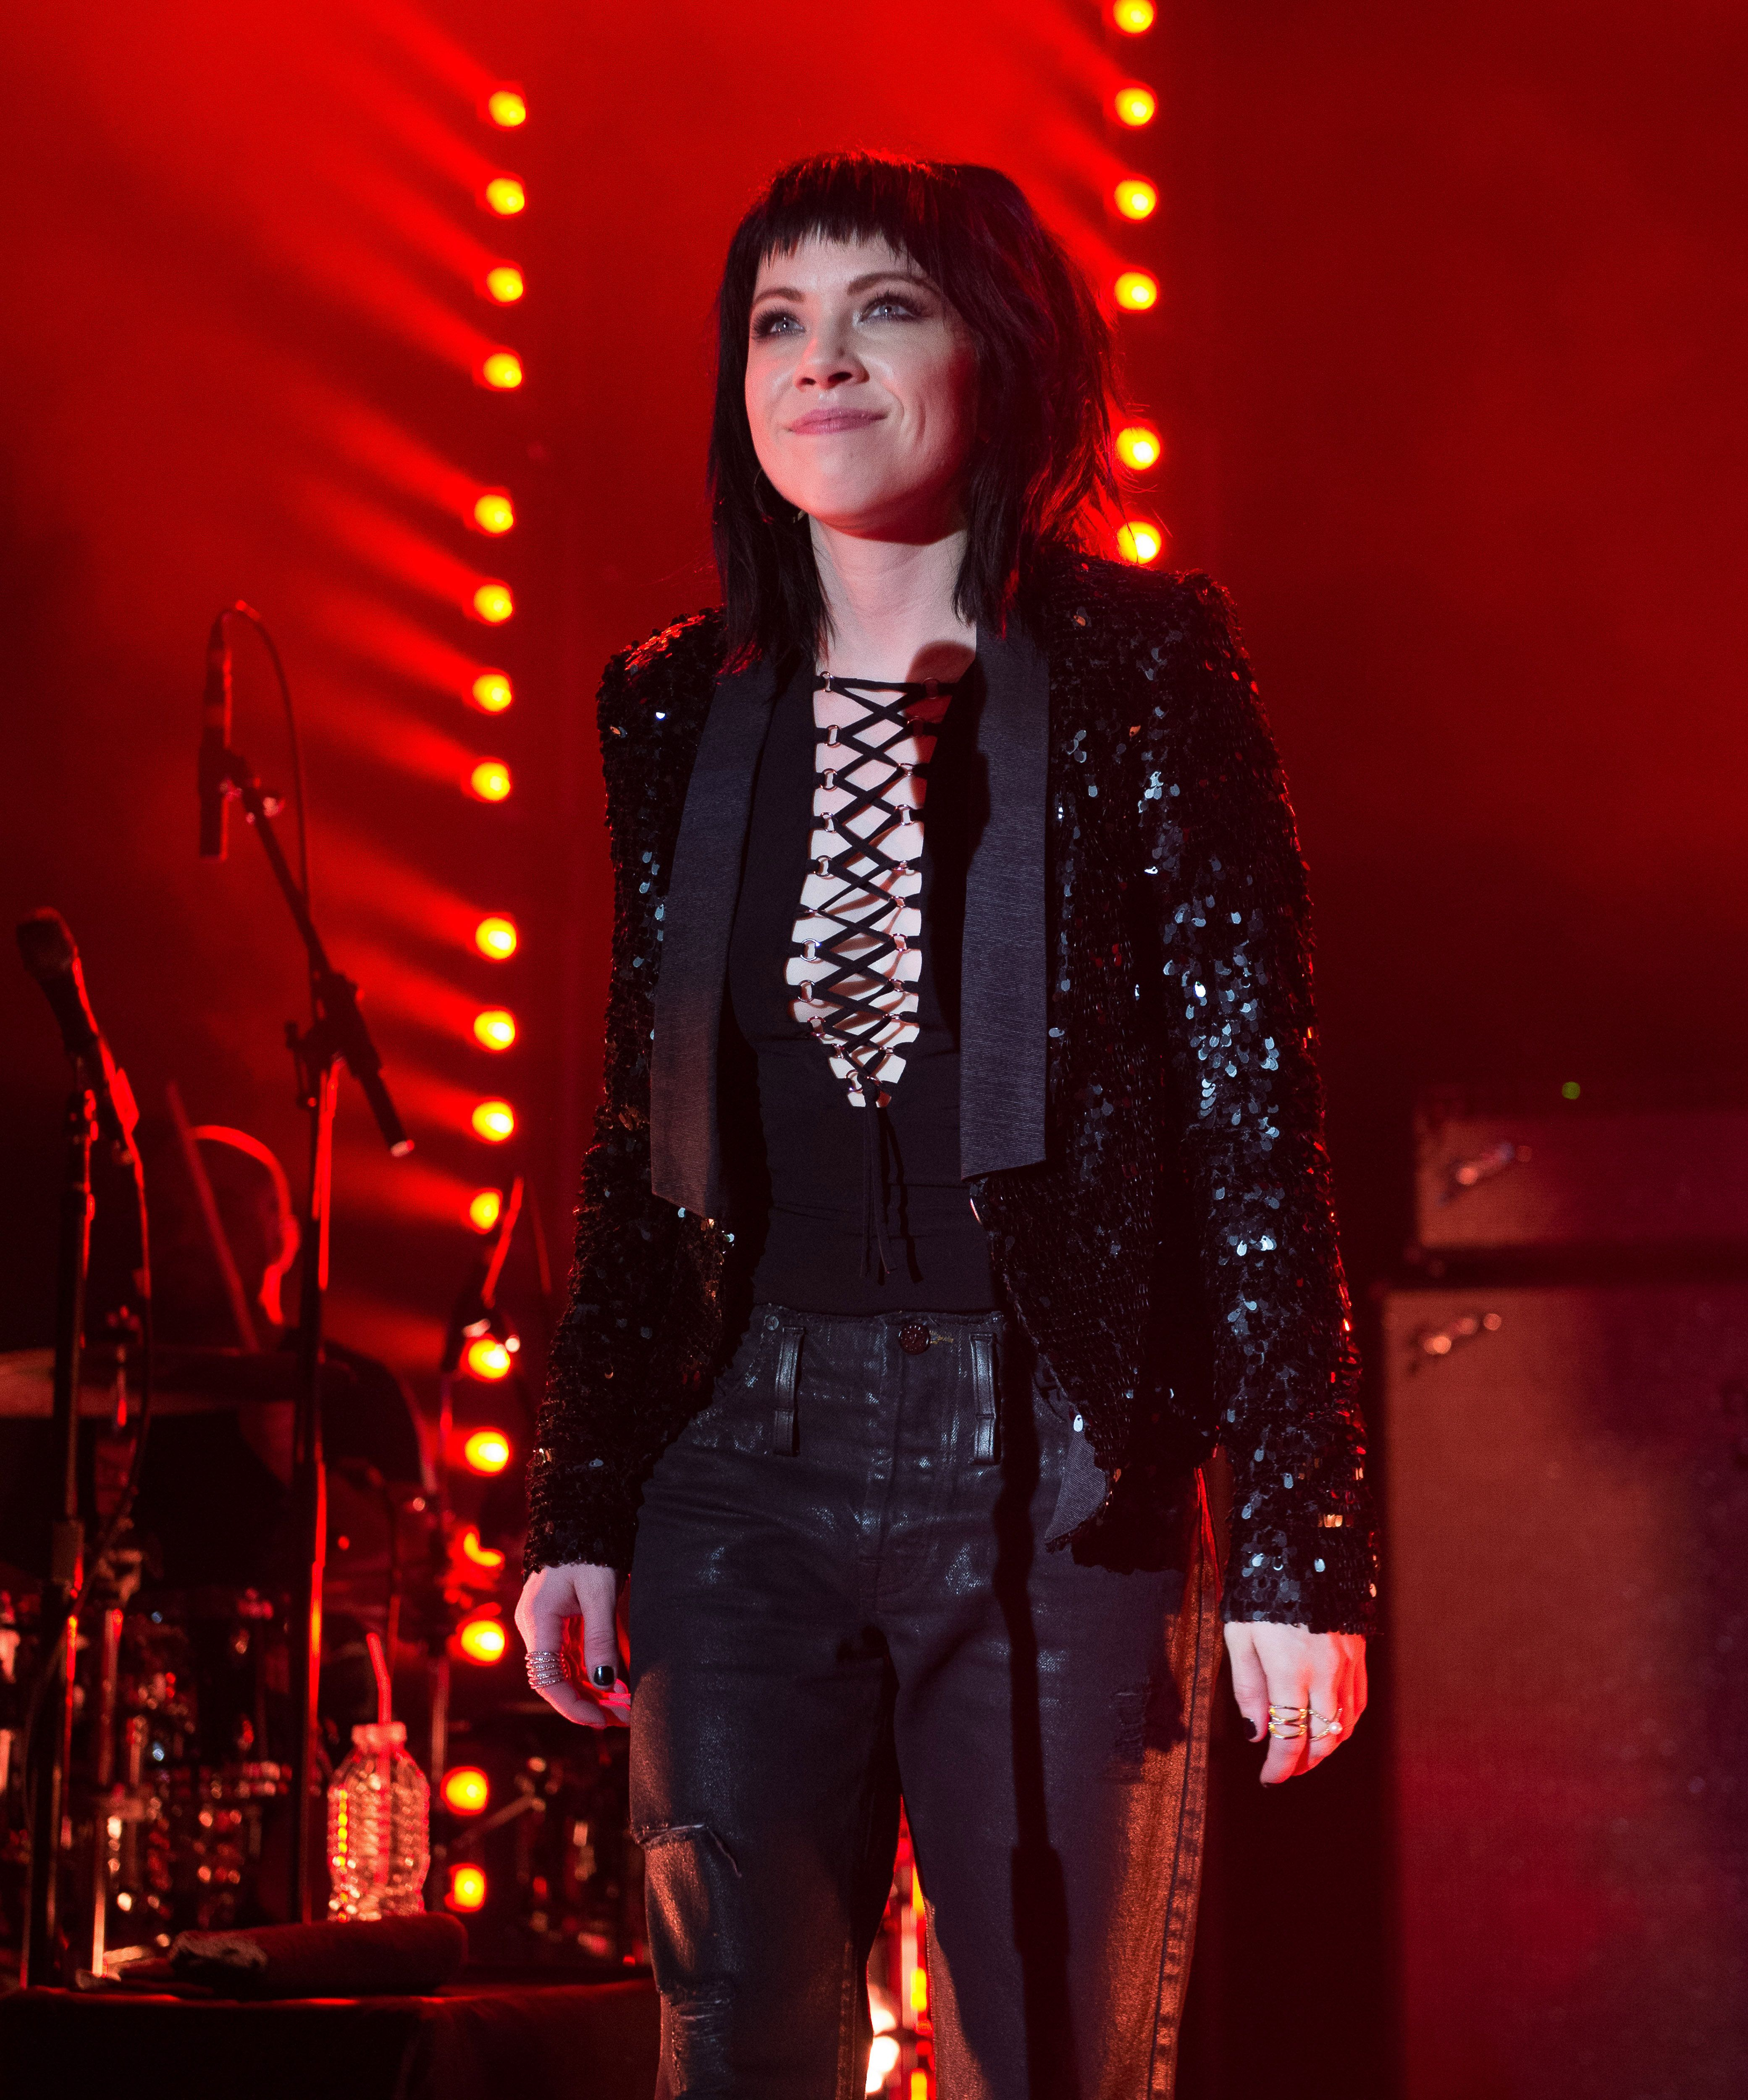 NEW YORK, NY - NOVEMBER 11:  Carly Rae Jepsen performs during her 'Gimmie Love' tour at Irving Plaza on November 11, 2015 in New York City.  (Photo by Mark Brown/Getty Images)